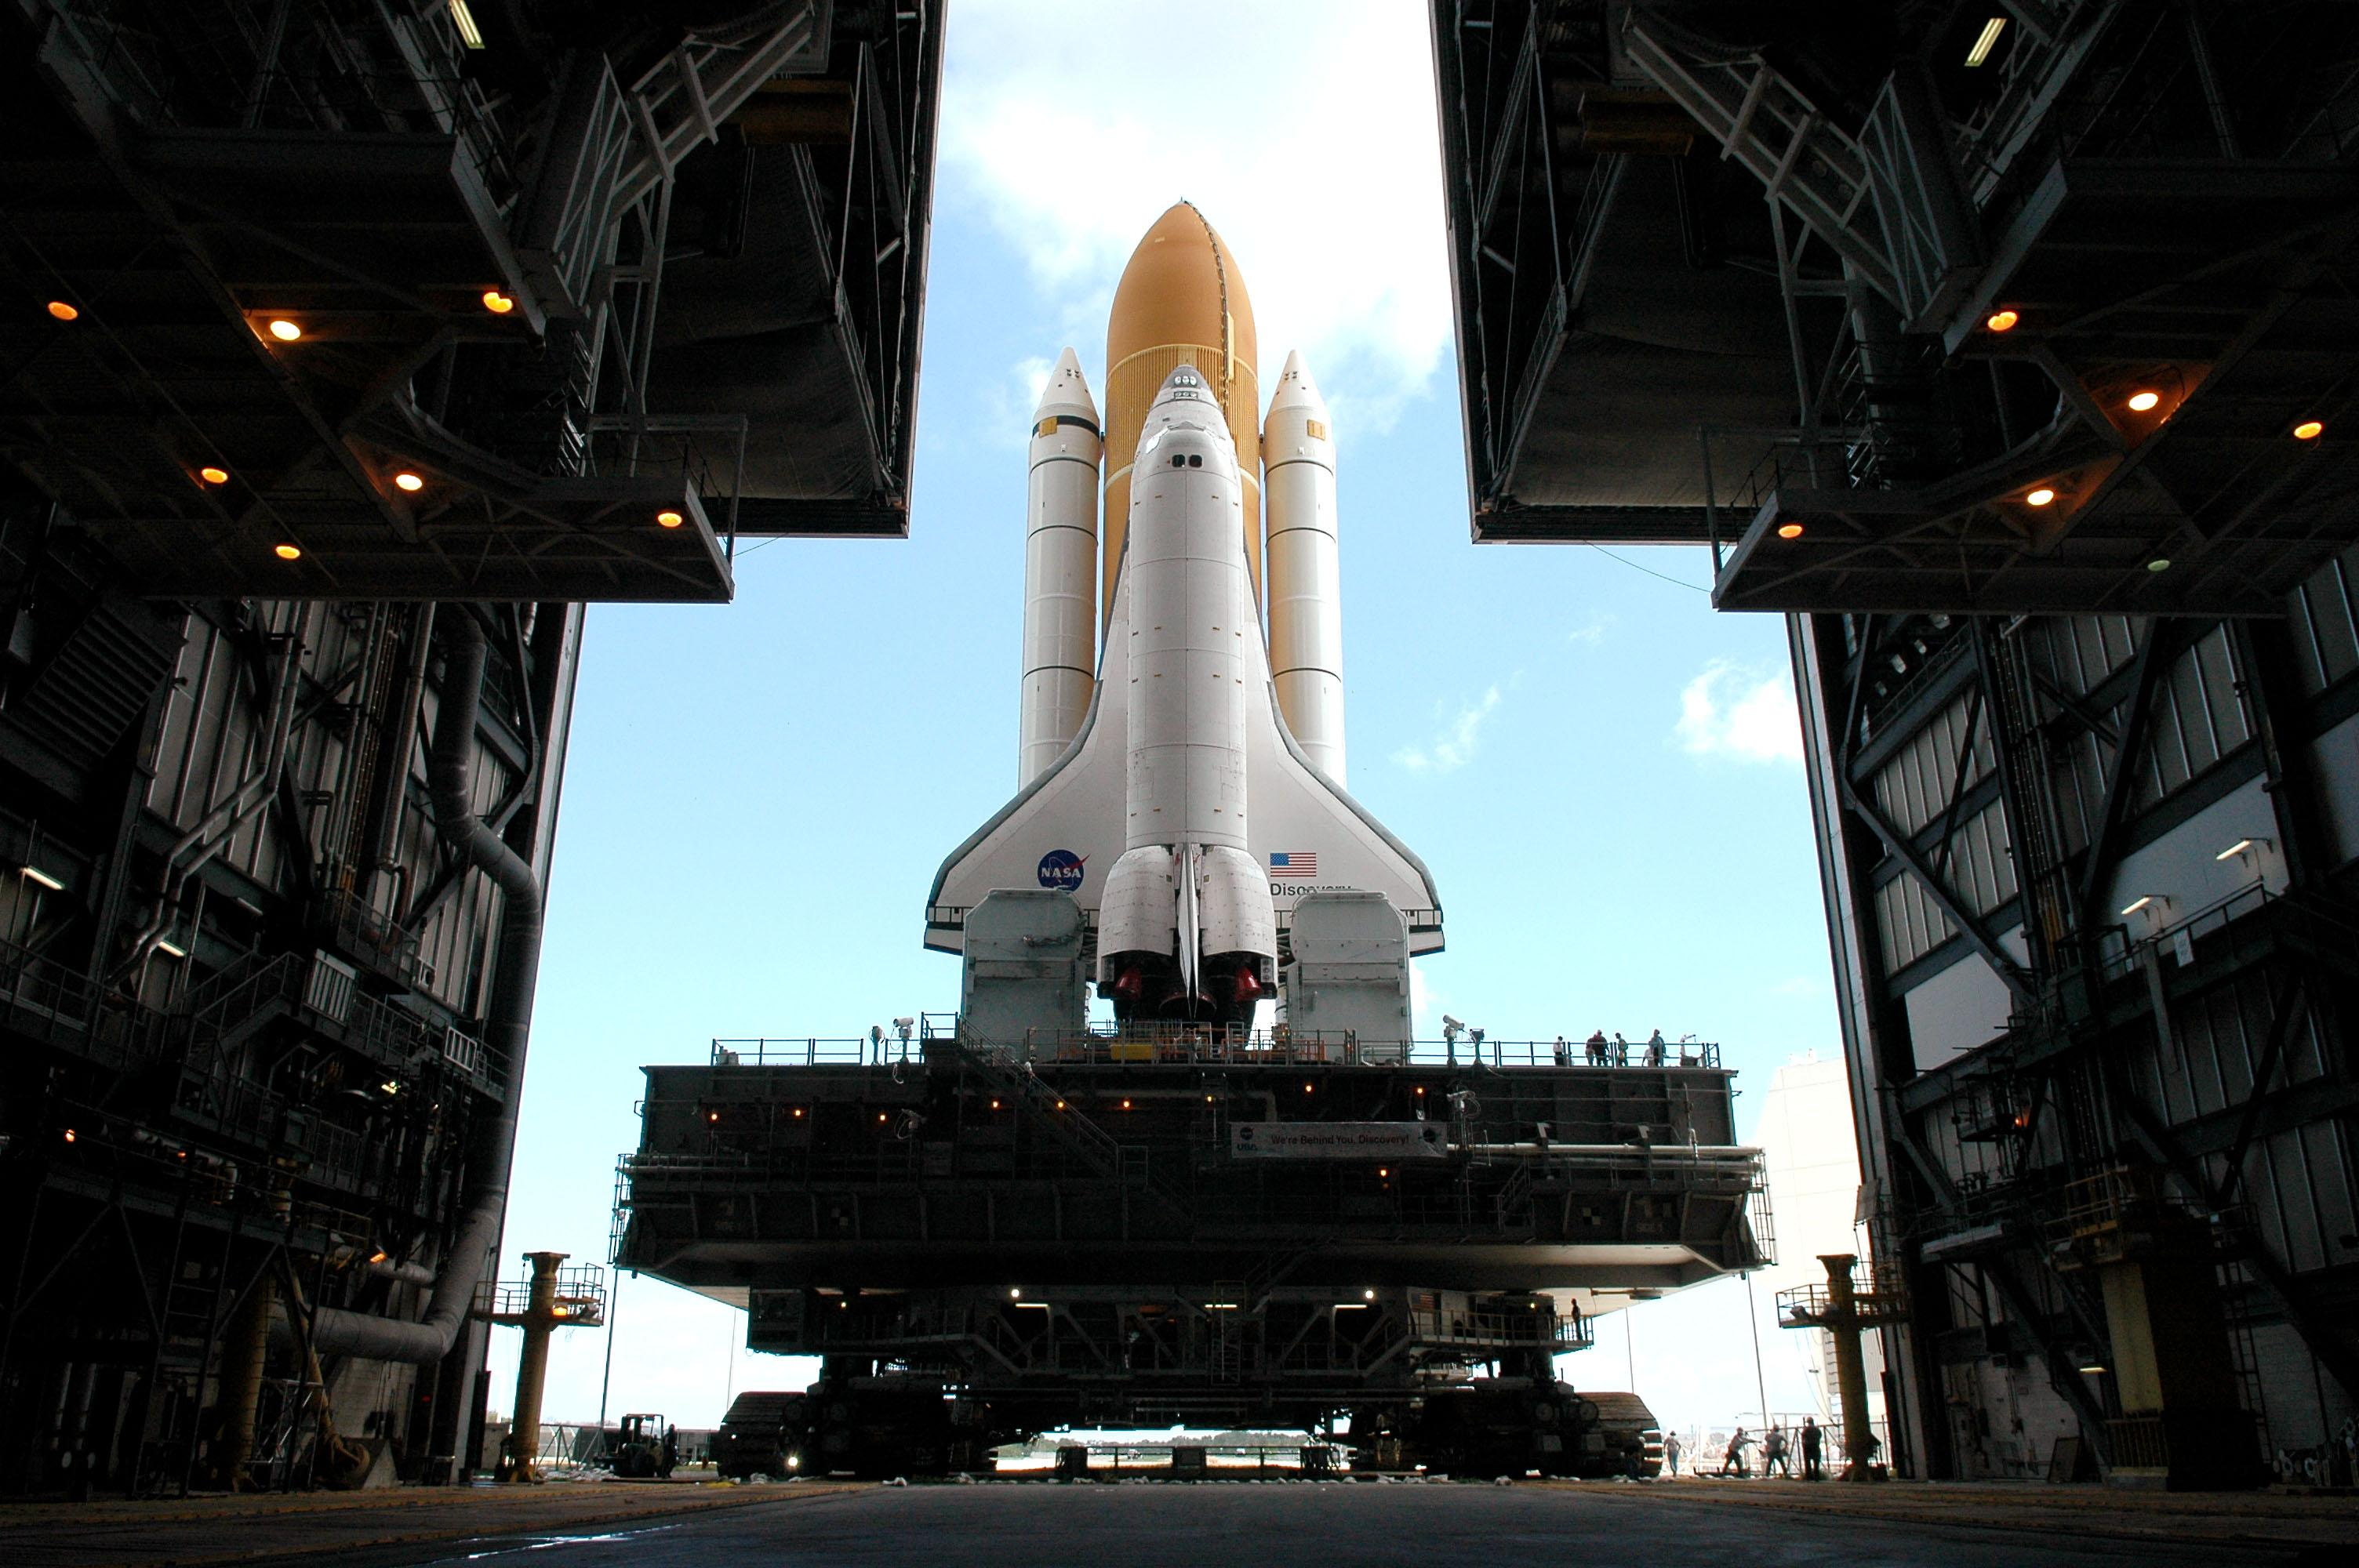 space shuttle discovery wallpaper - photo #20